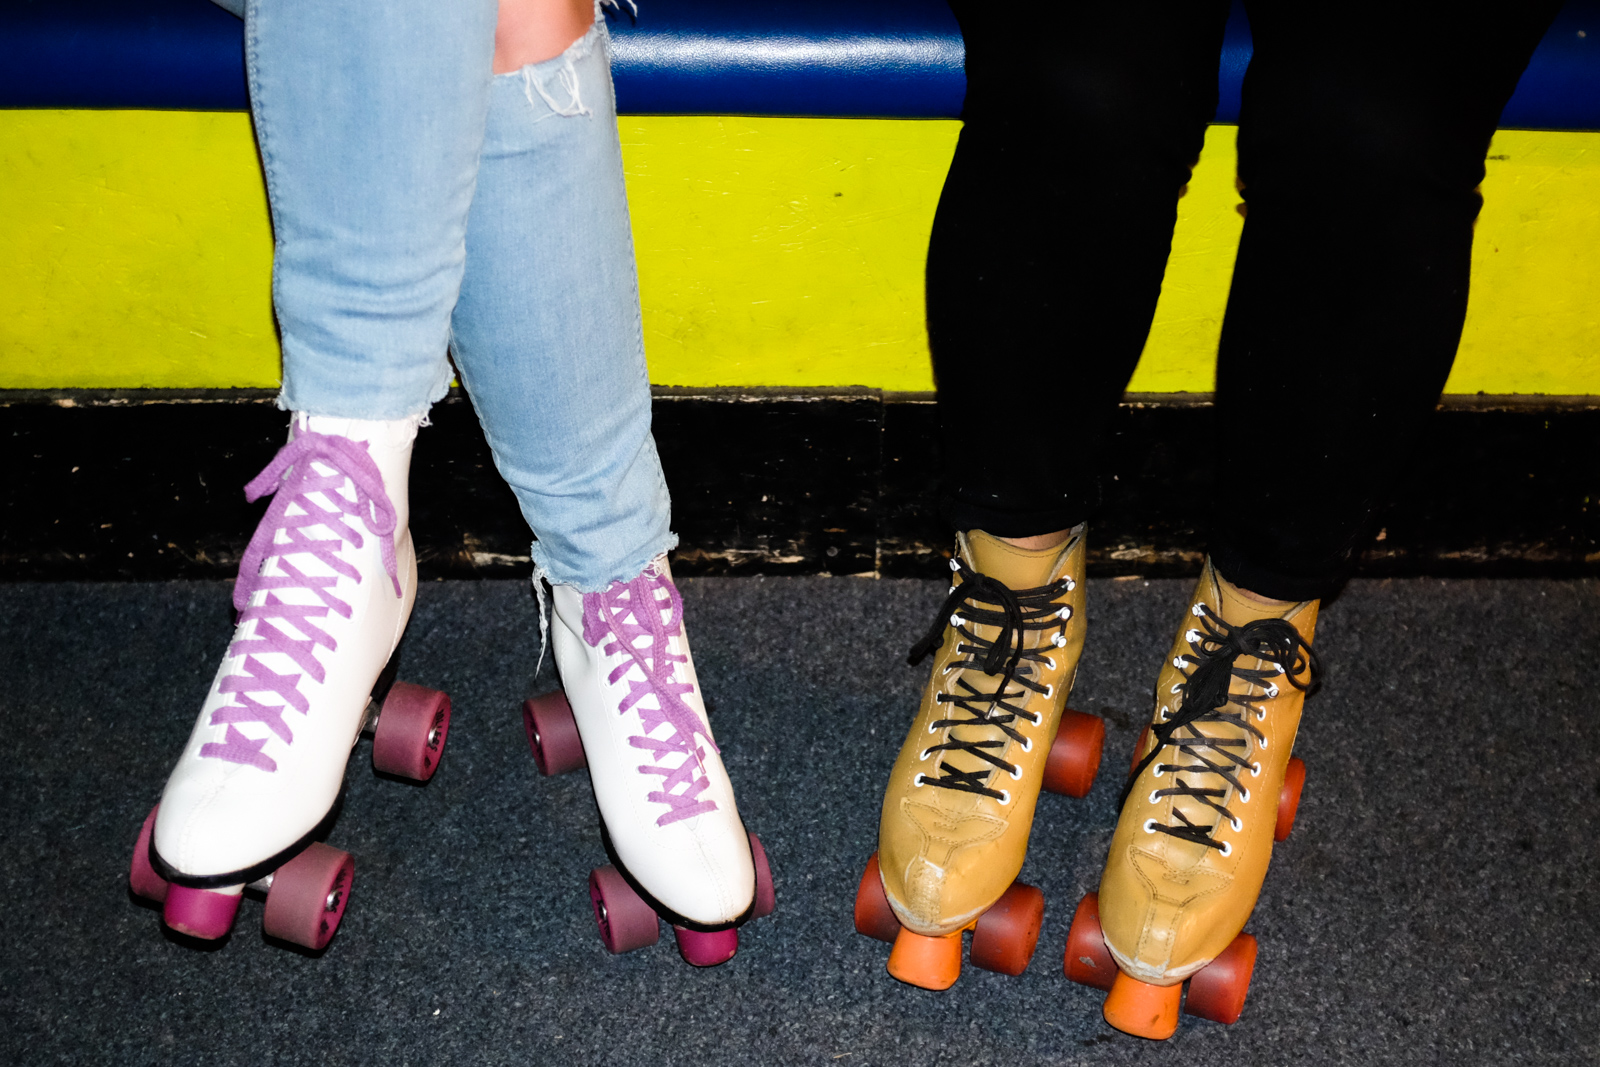 Every second Wednesday of the month from 8:30pm to 12:30pm, Southgate Roller Rink in White Center hosts Skate-a-raoke... and yes - it is exactly what it sounds like: skating around a roller rink with wireless microphone in hand. Sound amazing? Oh it is. $10 gets you in with skate rentals and everything. Southgate Roller Rink is a super throwback spot that'll make you feel like you've been transported back to your middle school skate night days in the very bast way. There's a fully stocked bar in the back (you'll just have to roll down the carpeted ramp in the back) and all kinds of snacks available for purchase including Full Tilt Ice Cream. Check out scenes from July's installation of skate-a-raoke after the jump and be sure not to miss it in August (it falls on the 9th) - it could be a new tradition in the making! (Image: Chona Kasinger / Seattle Refined)